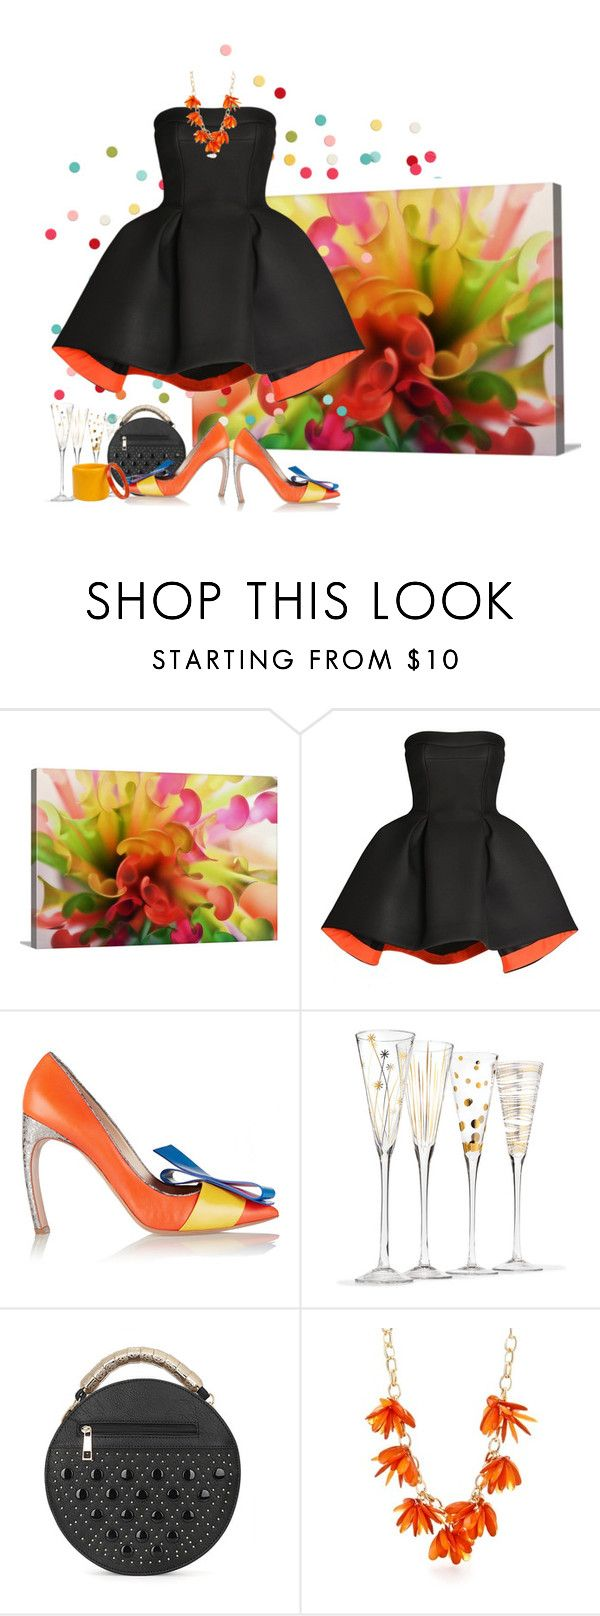 """""""THE Party"""" by tinayar ❤ liked on Polyvore featuring Parlor, Nicholas Kirkwood, Marni and New Directions"""